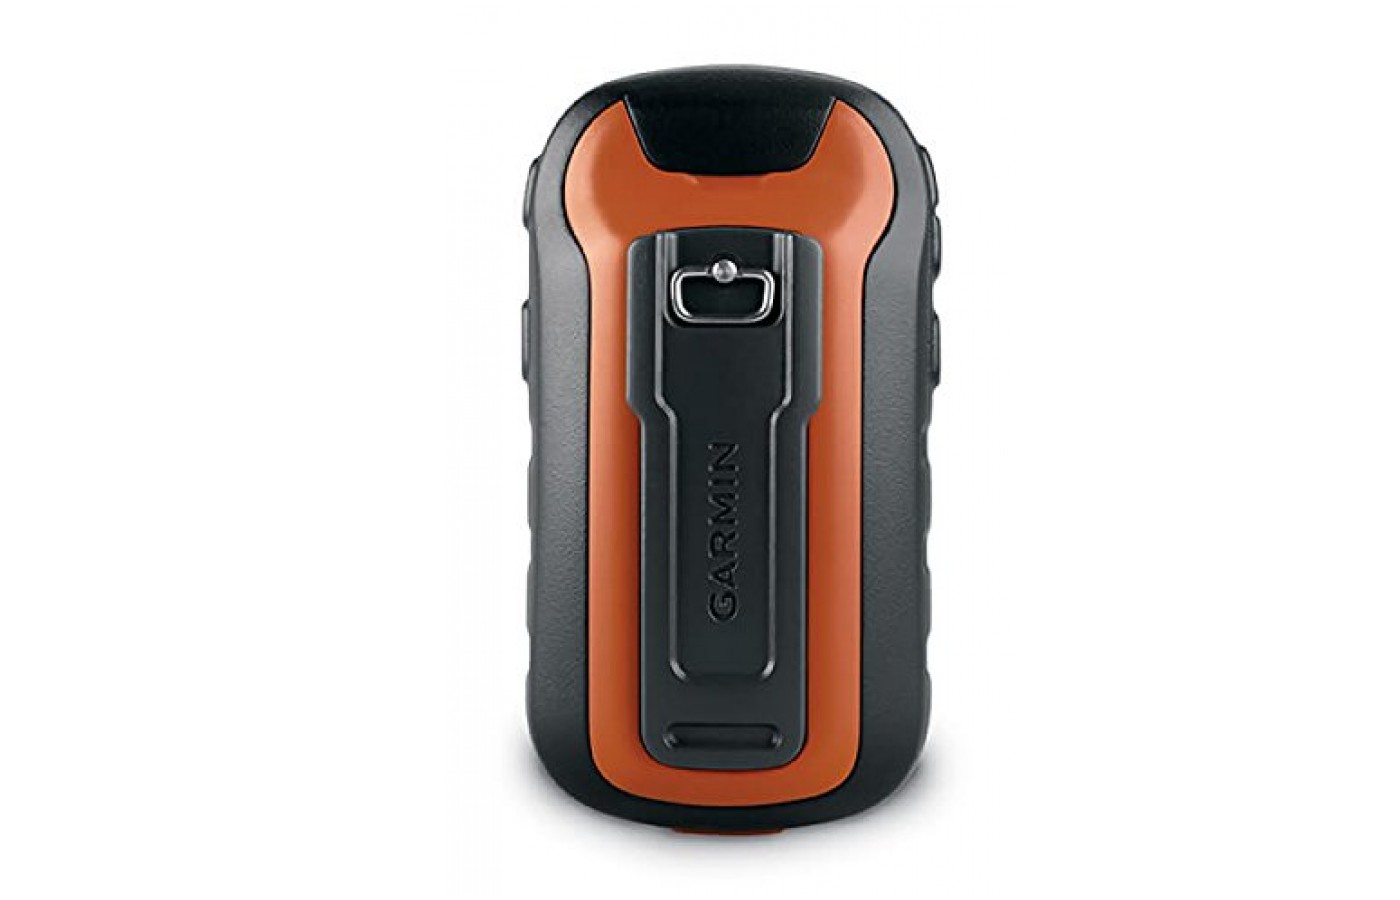 The eTrex requires only 2 AA batteries to use.